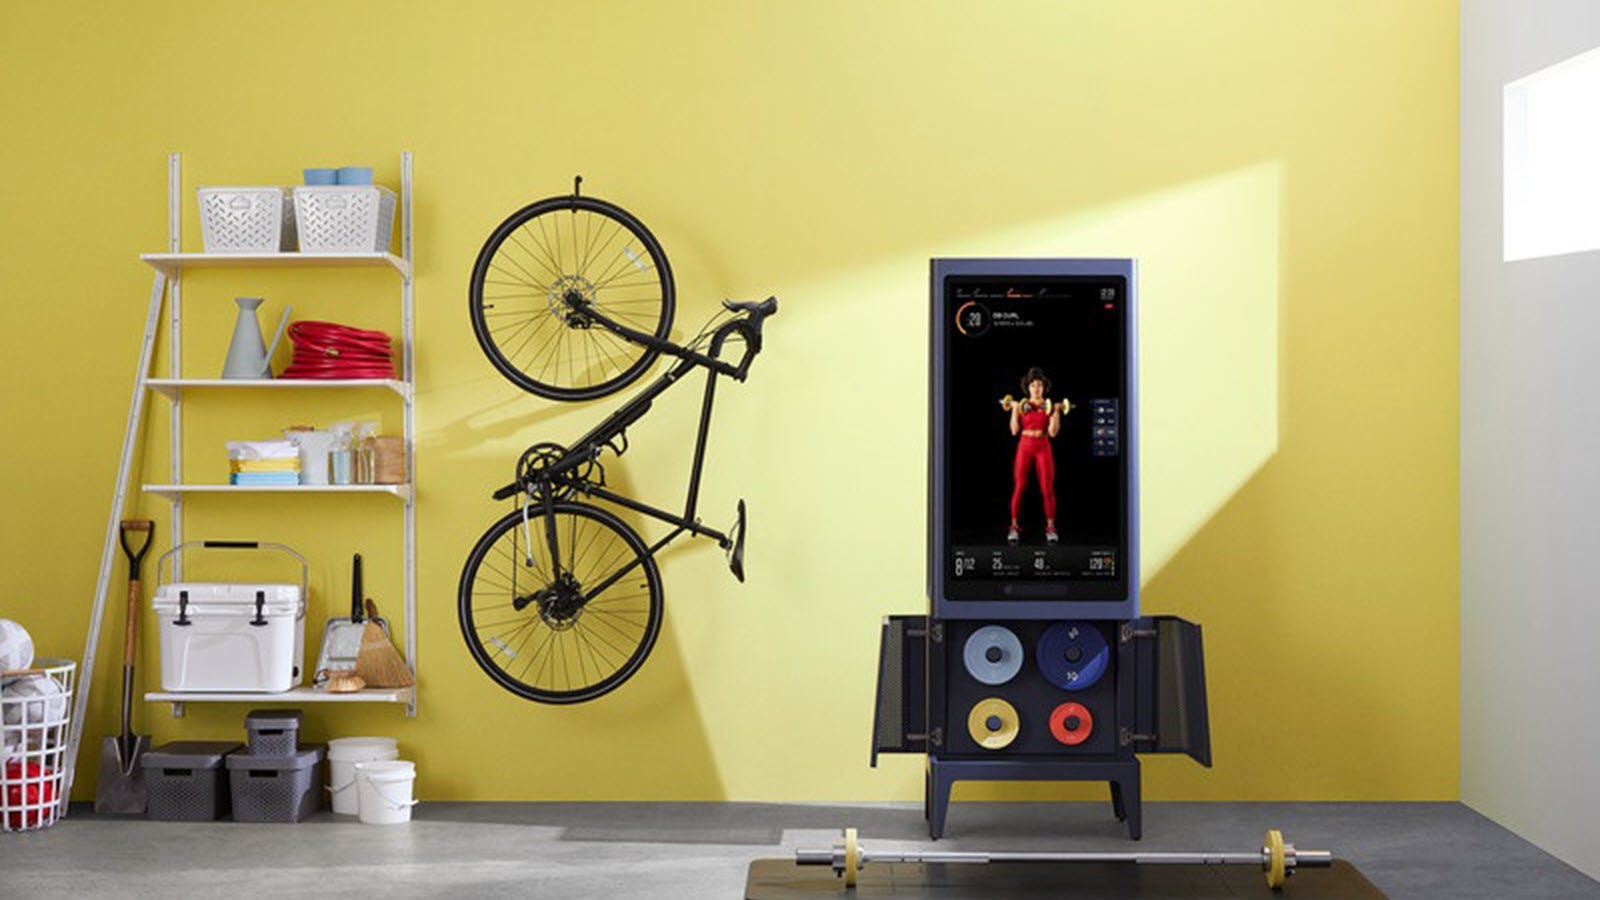 The Tempo Studio in a garage with an open cabinet showing weight plates.